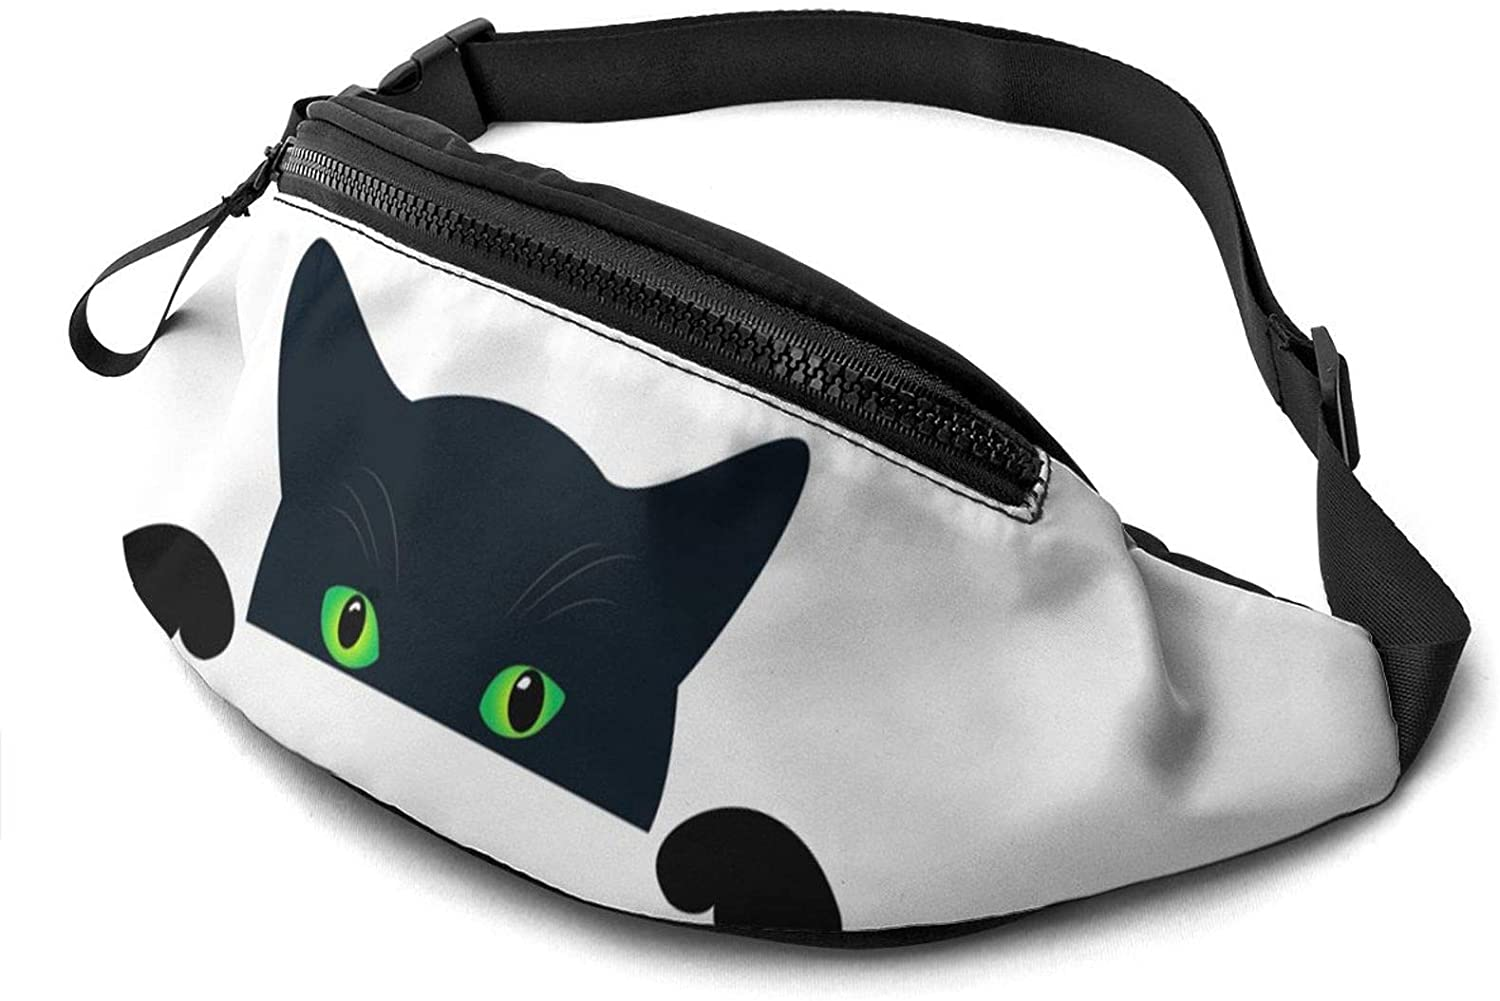 Dujiea Fanny Pack, Cute Black Cat Face Waist Bag with Headphone Hole Belt Bag Adjustable Sling Pocket Fashion Hip Bum Bag for Women Men Kids Outdoors Casual Travelling Hiking Cycling